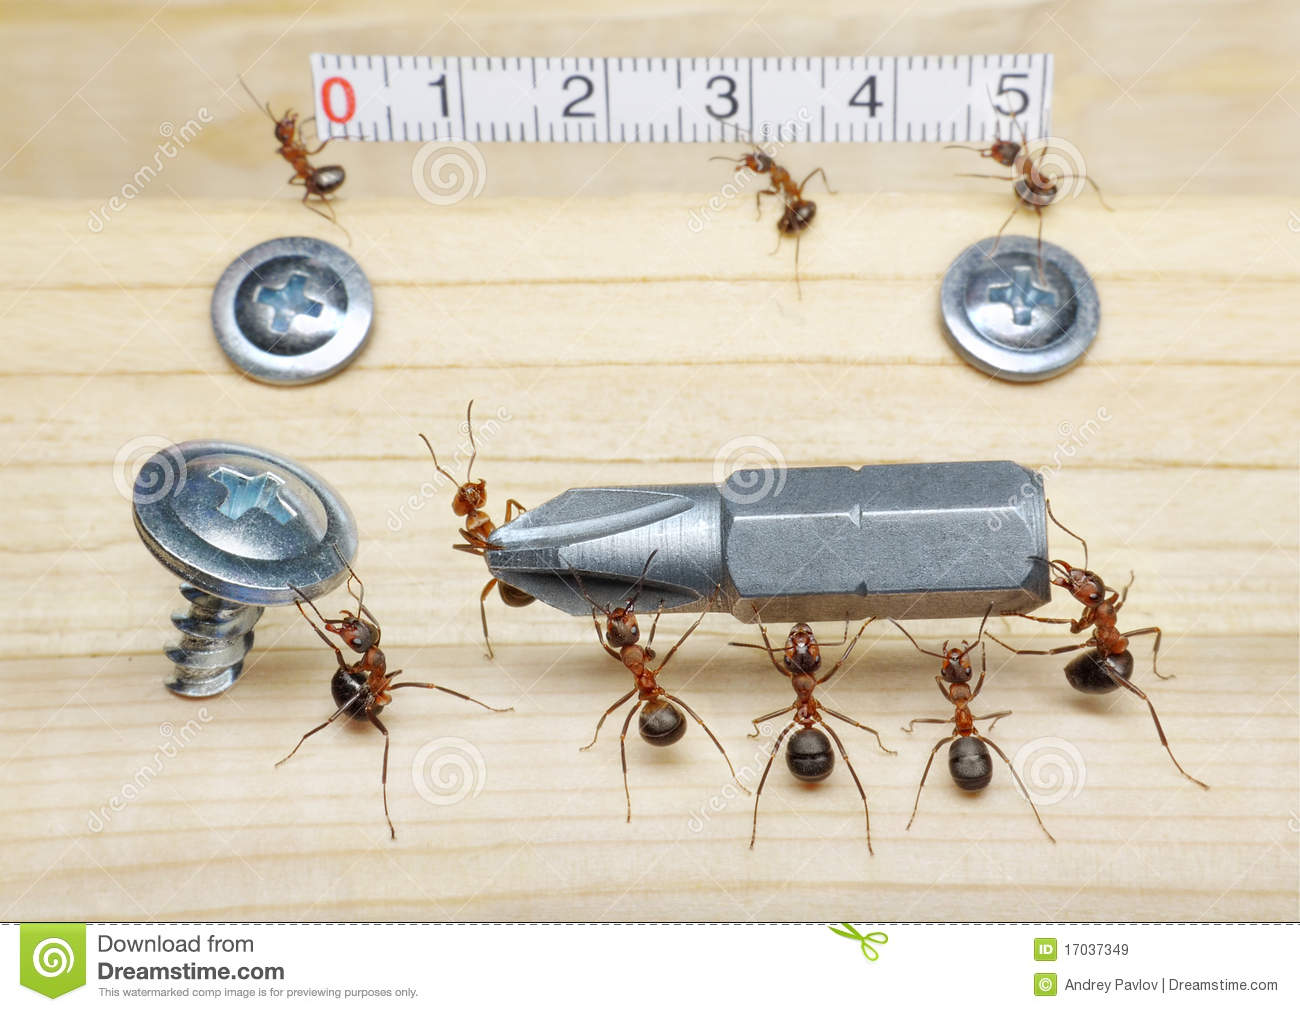 Team of ants works constructing, teamwork